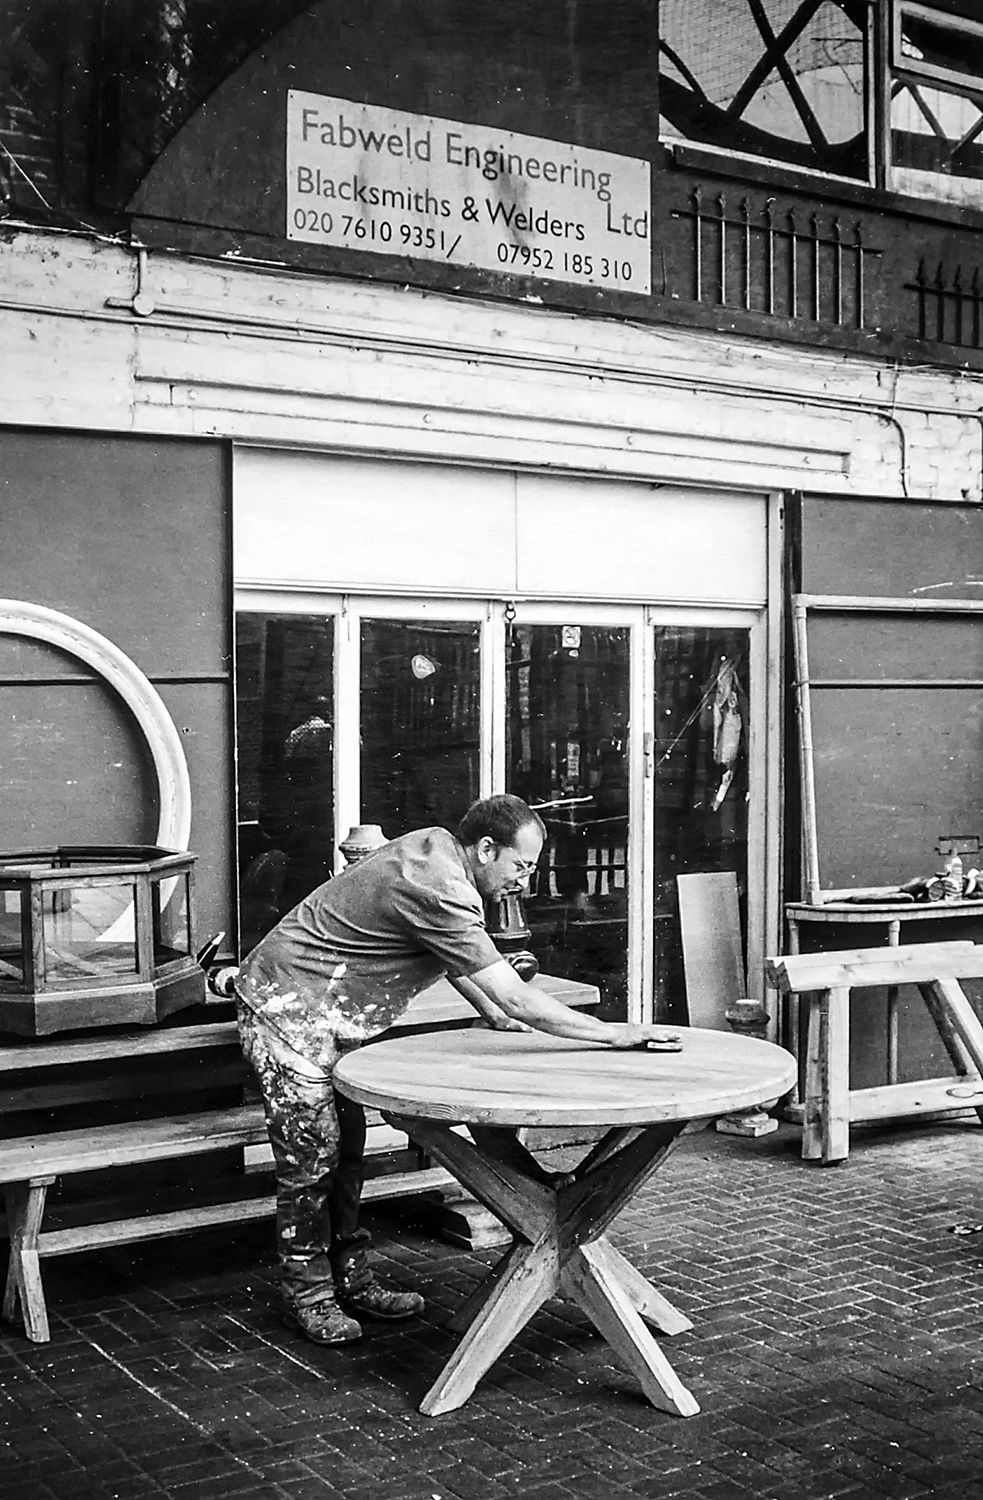 David sanding at Fabweld Engineering  The Arches Putney Bridge Station Approach, SW6